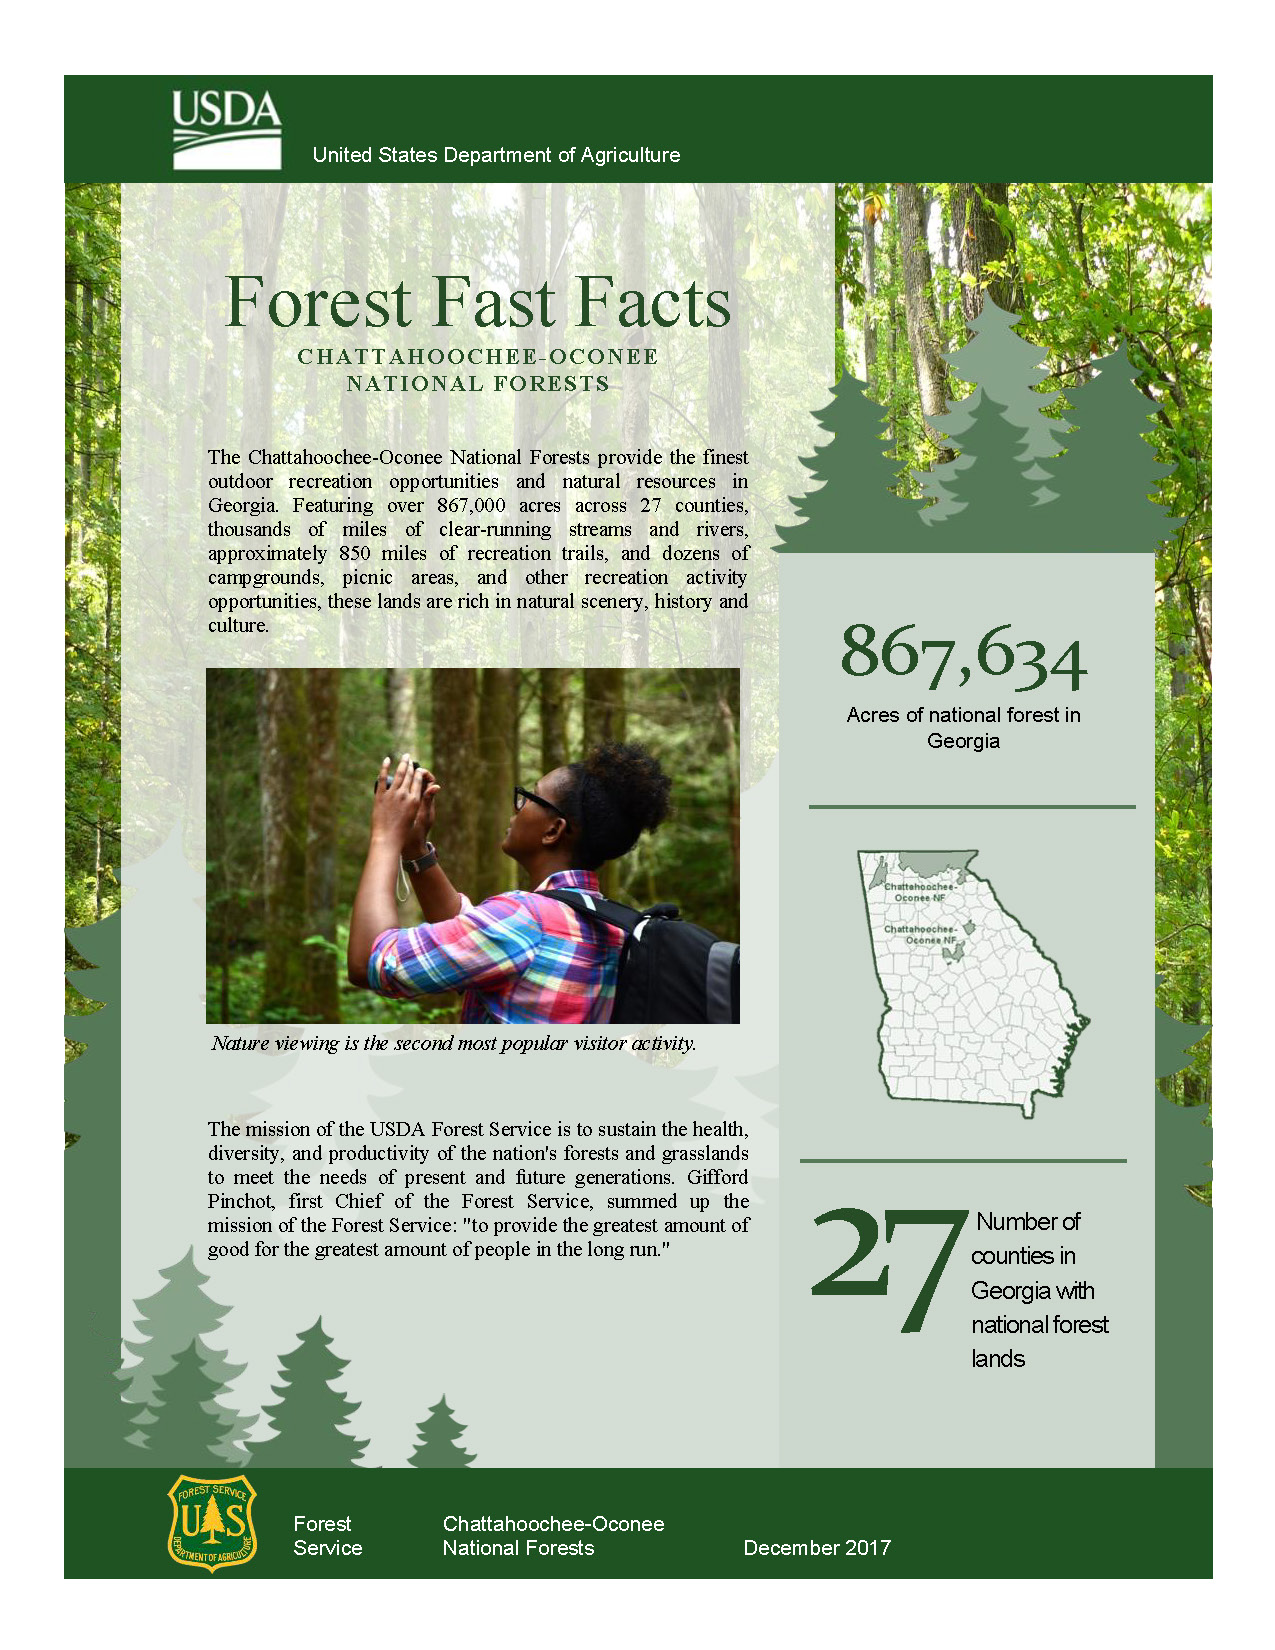 Fast Facts about the Chattahoochee-Oconee National Forests